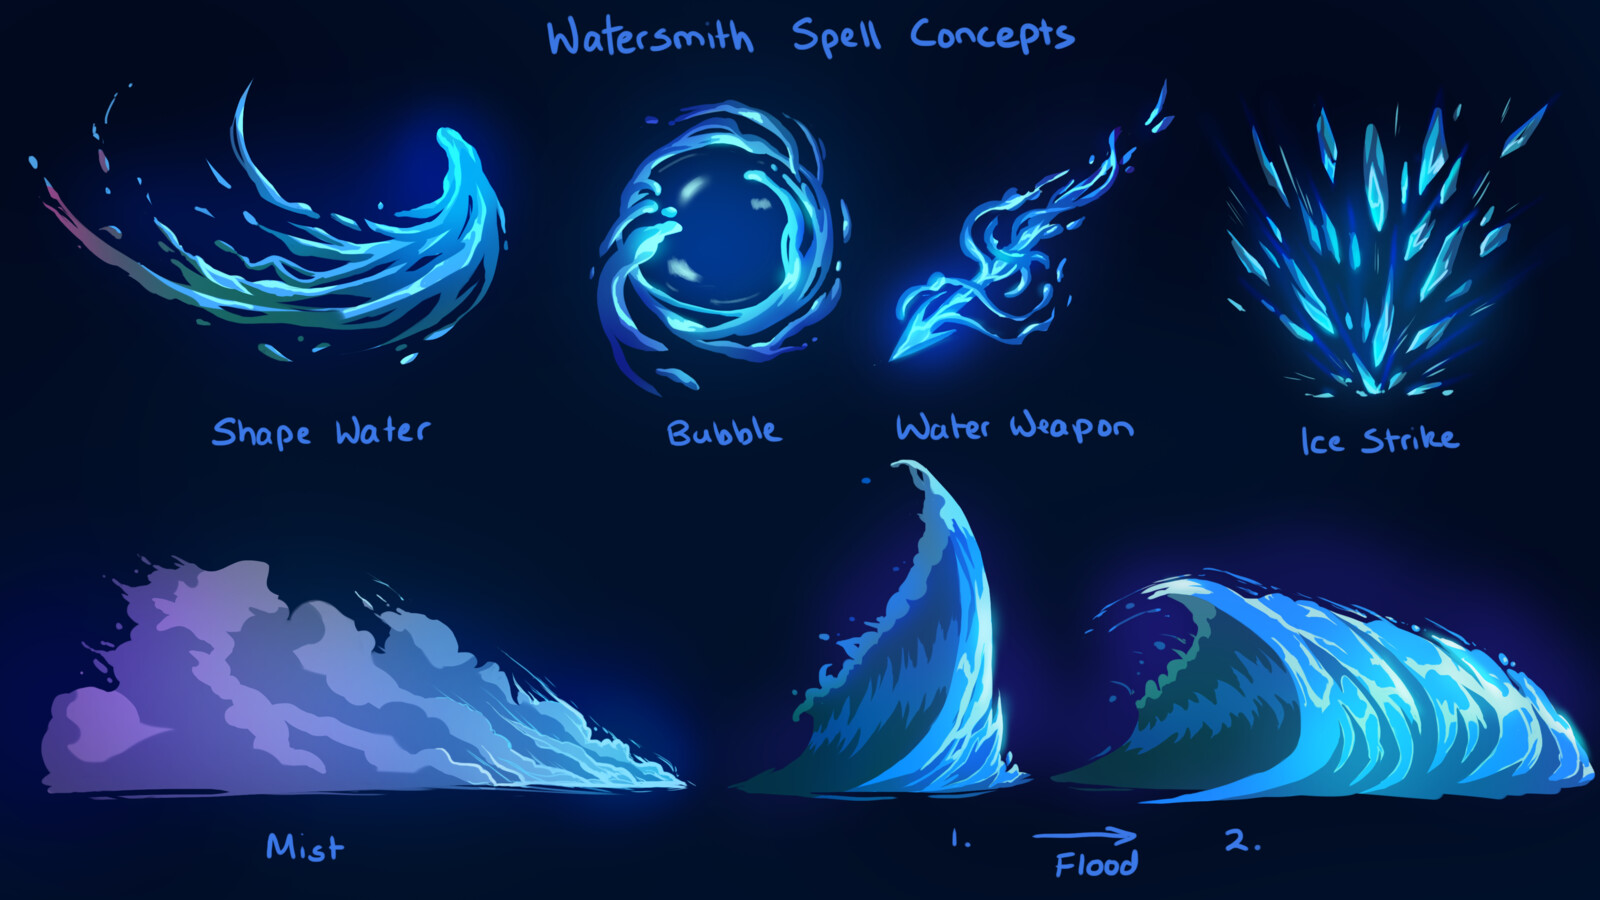 Watersmith Spell Concepts